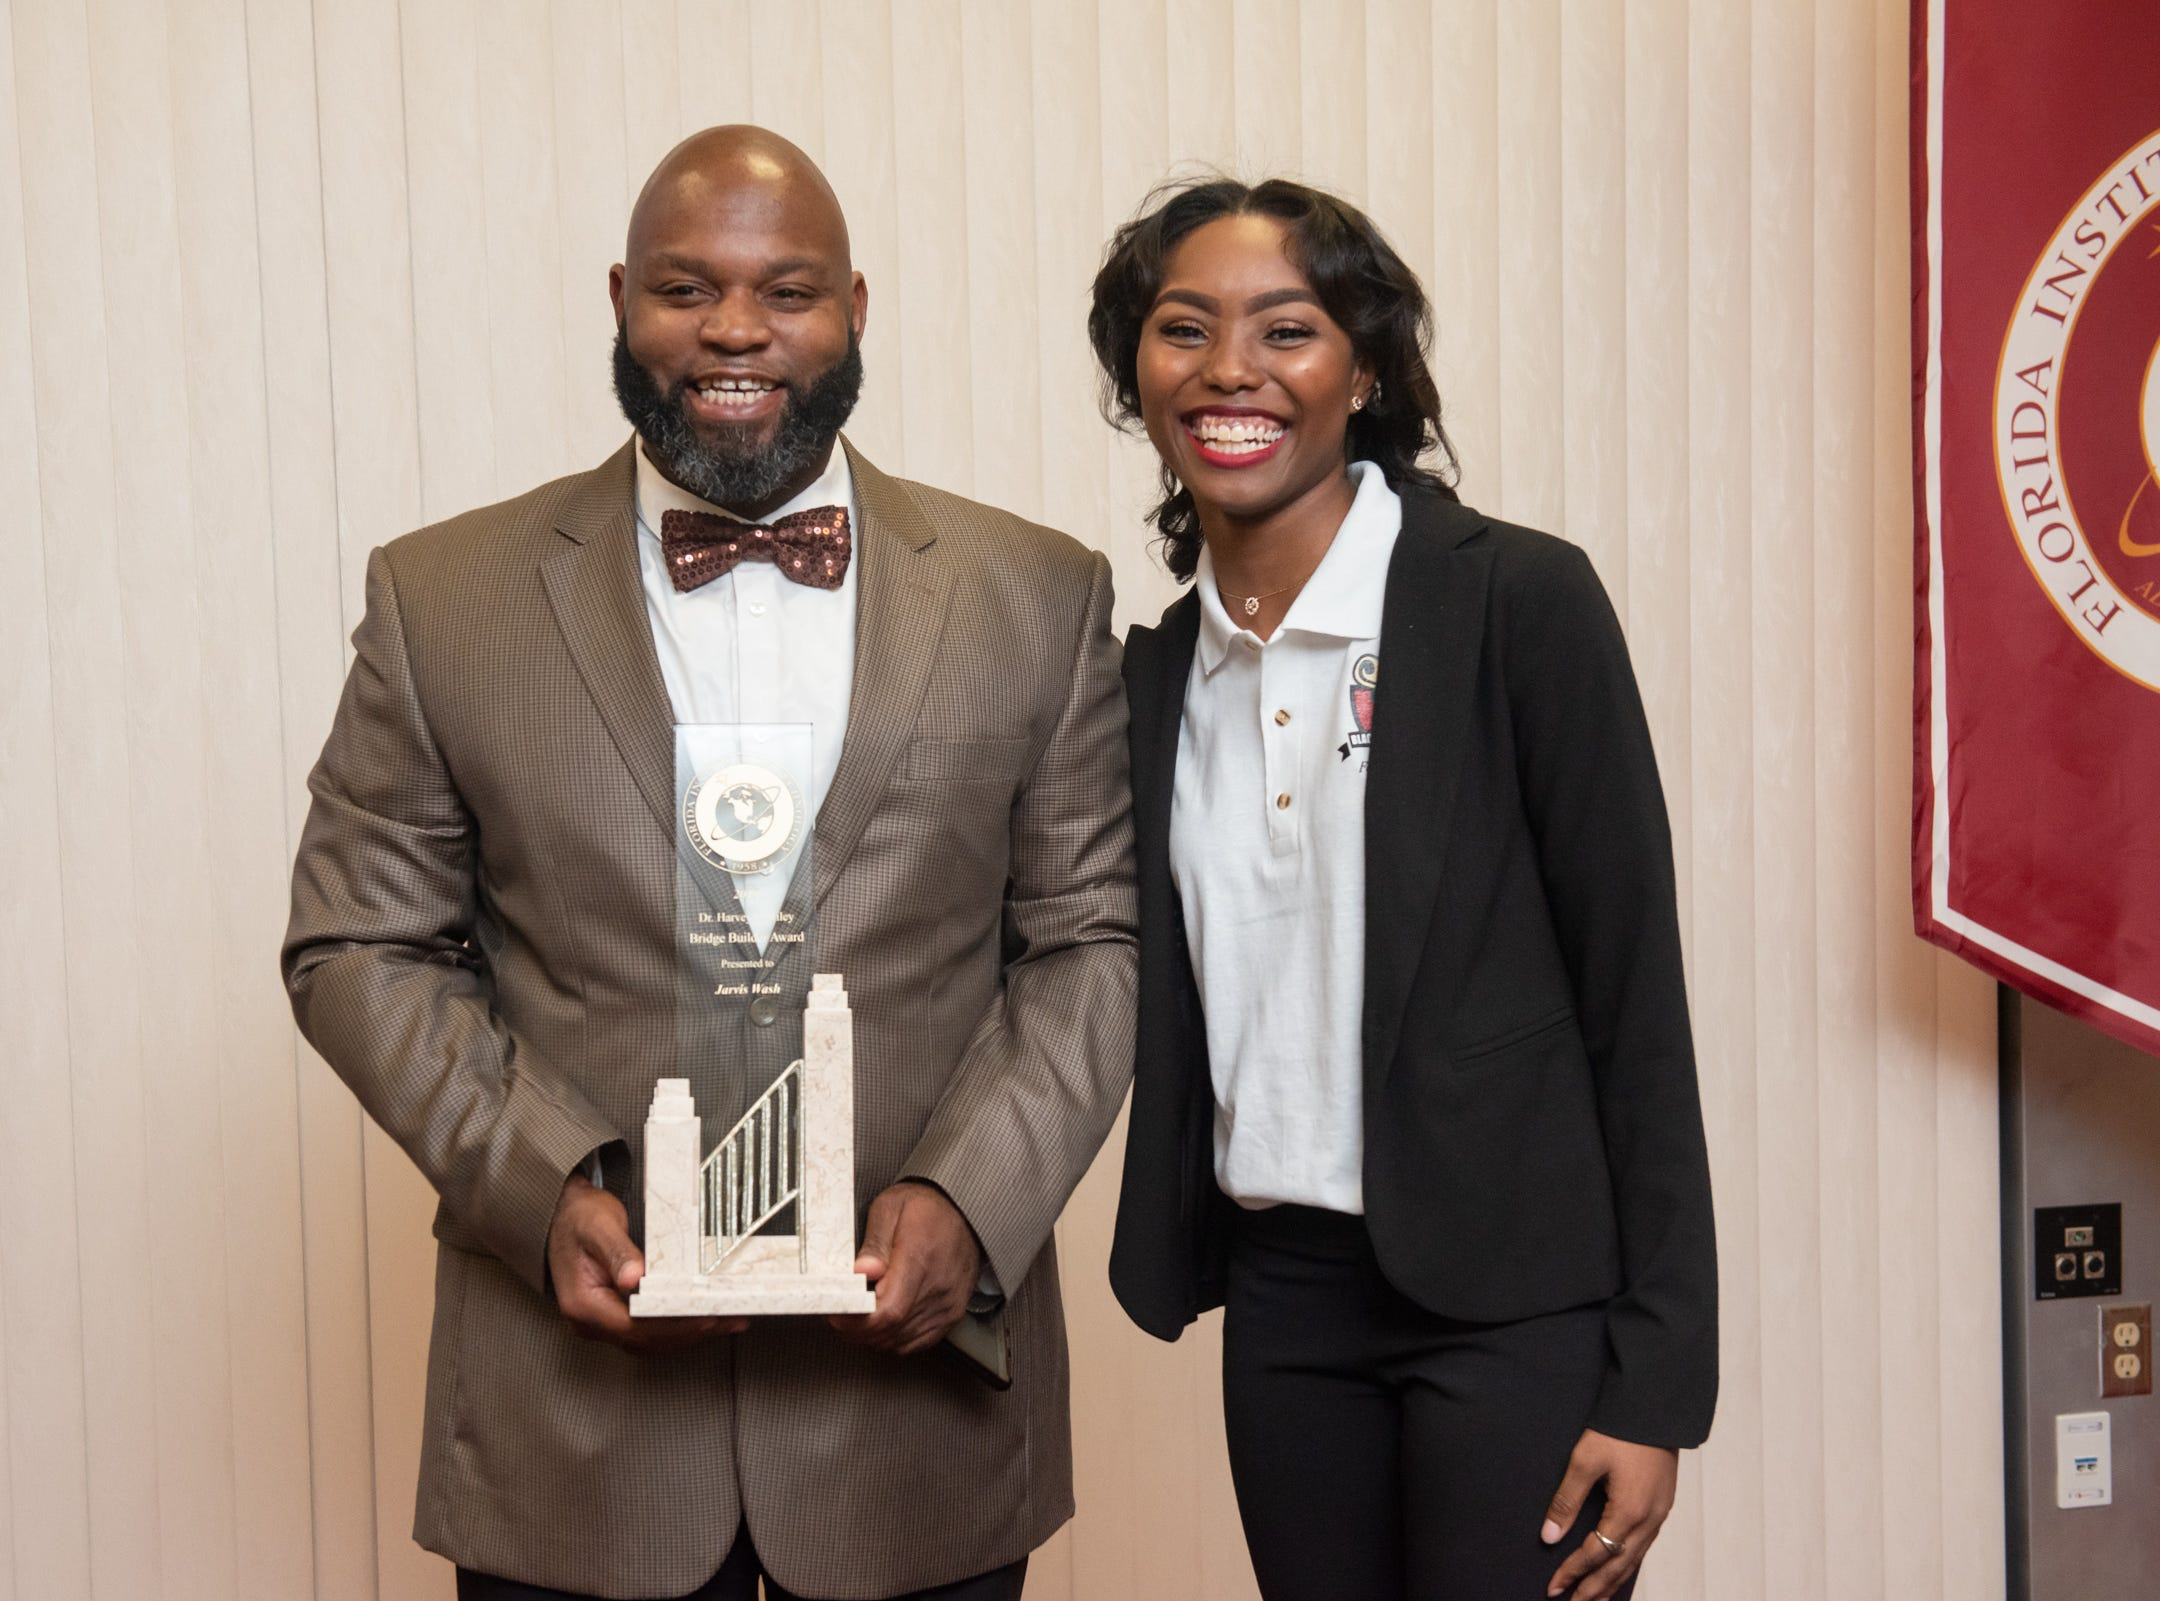 Pastor Jarvis Wash receives the Bridge Builder Award, presented by Black Student Union President Furaha Merritt at the Julius Montgomery Pioneer Award and the Dr. Harvey L. Riley Bridge Builder Award presentation in celebration of Martin Luther King Jr. Day.